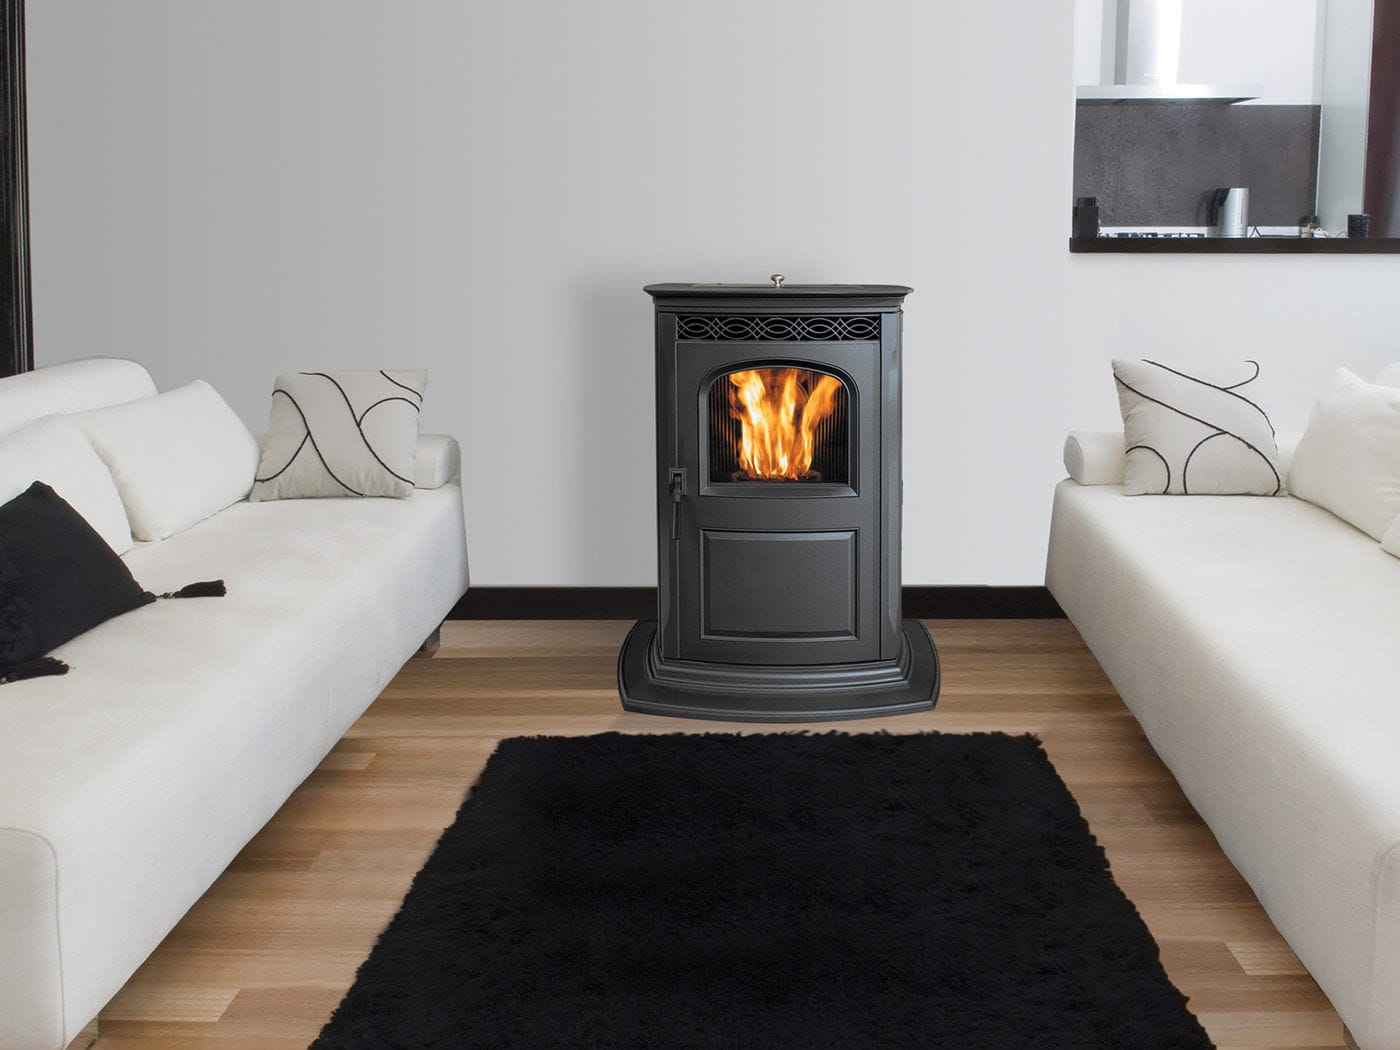 Pellet Kaminofen Wartung Pellets Kaminofen Traditionell Aus Gusseisen Accentra Harman Stoves